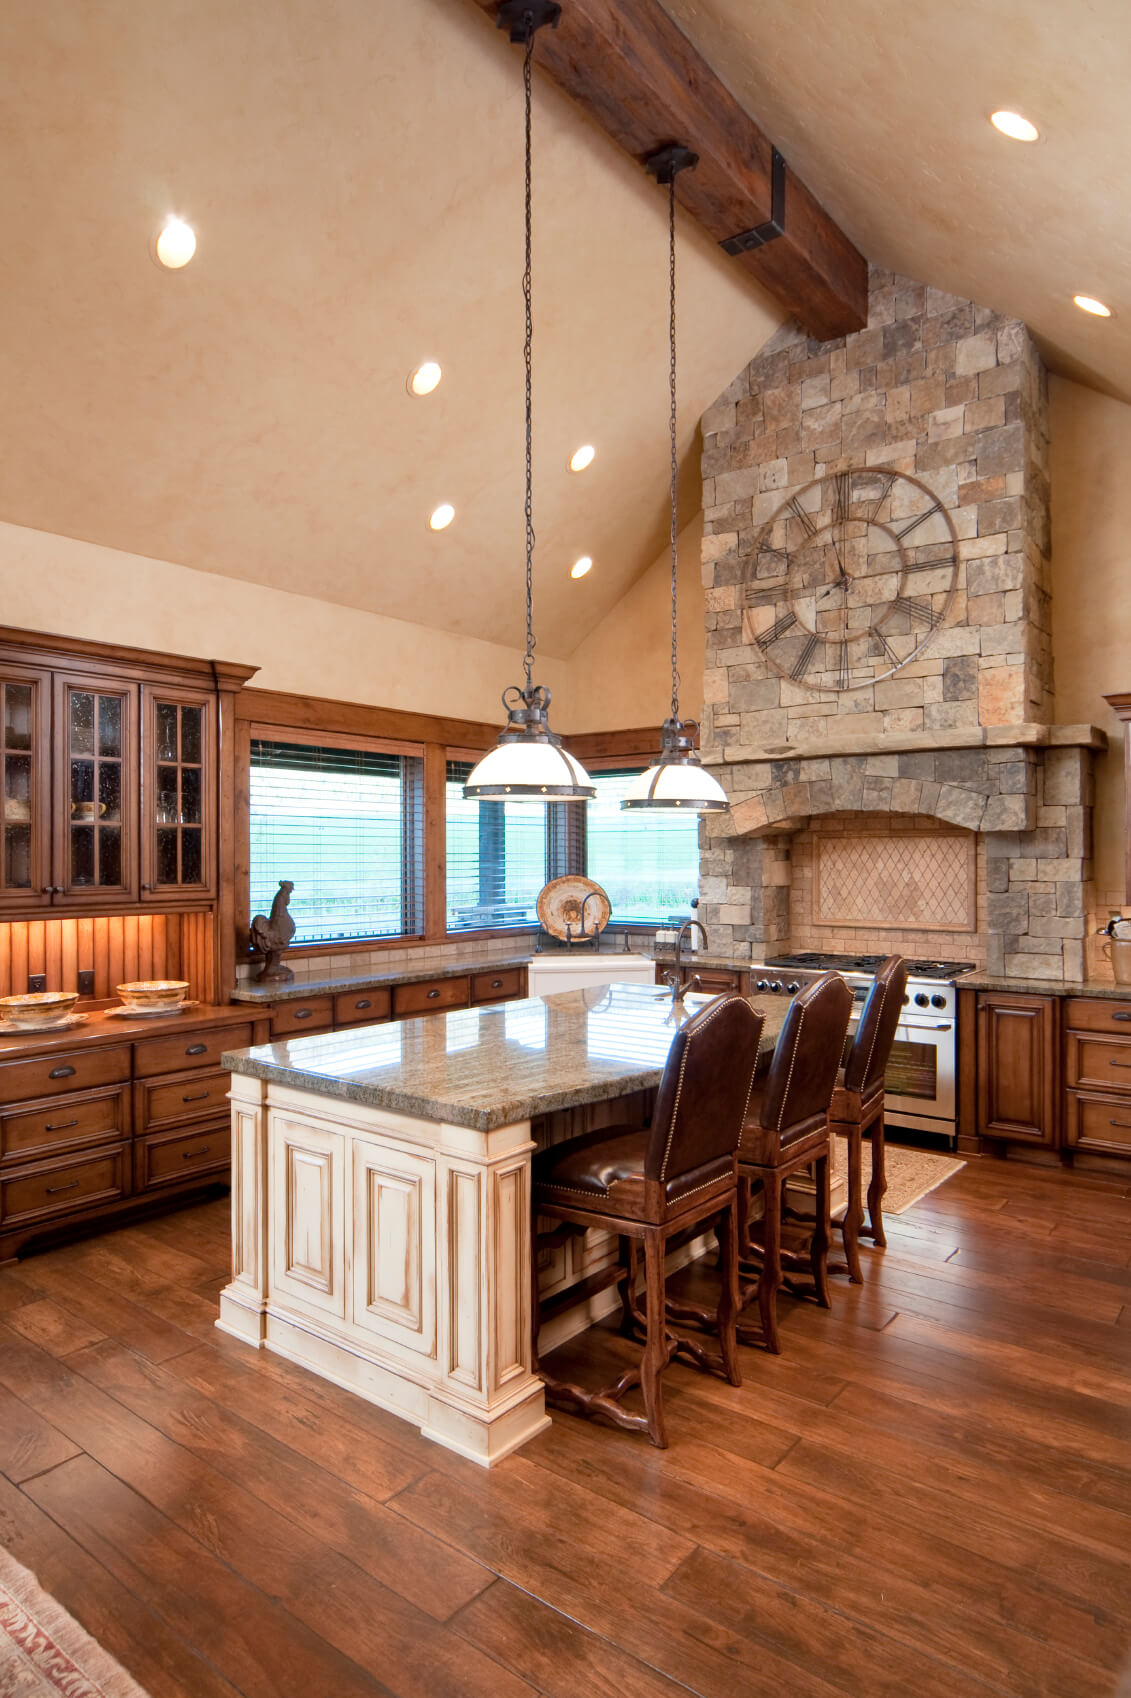 48 Luxury Dream Kitchen Designs Worth very Penny (Photos) - ^